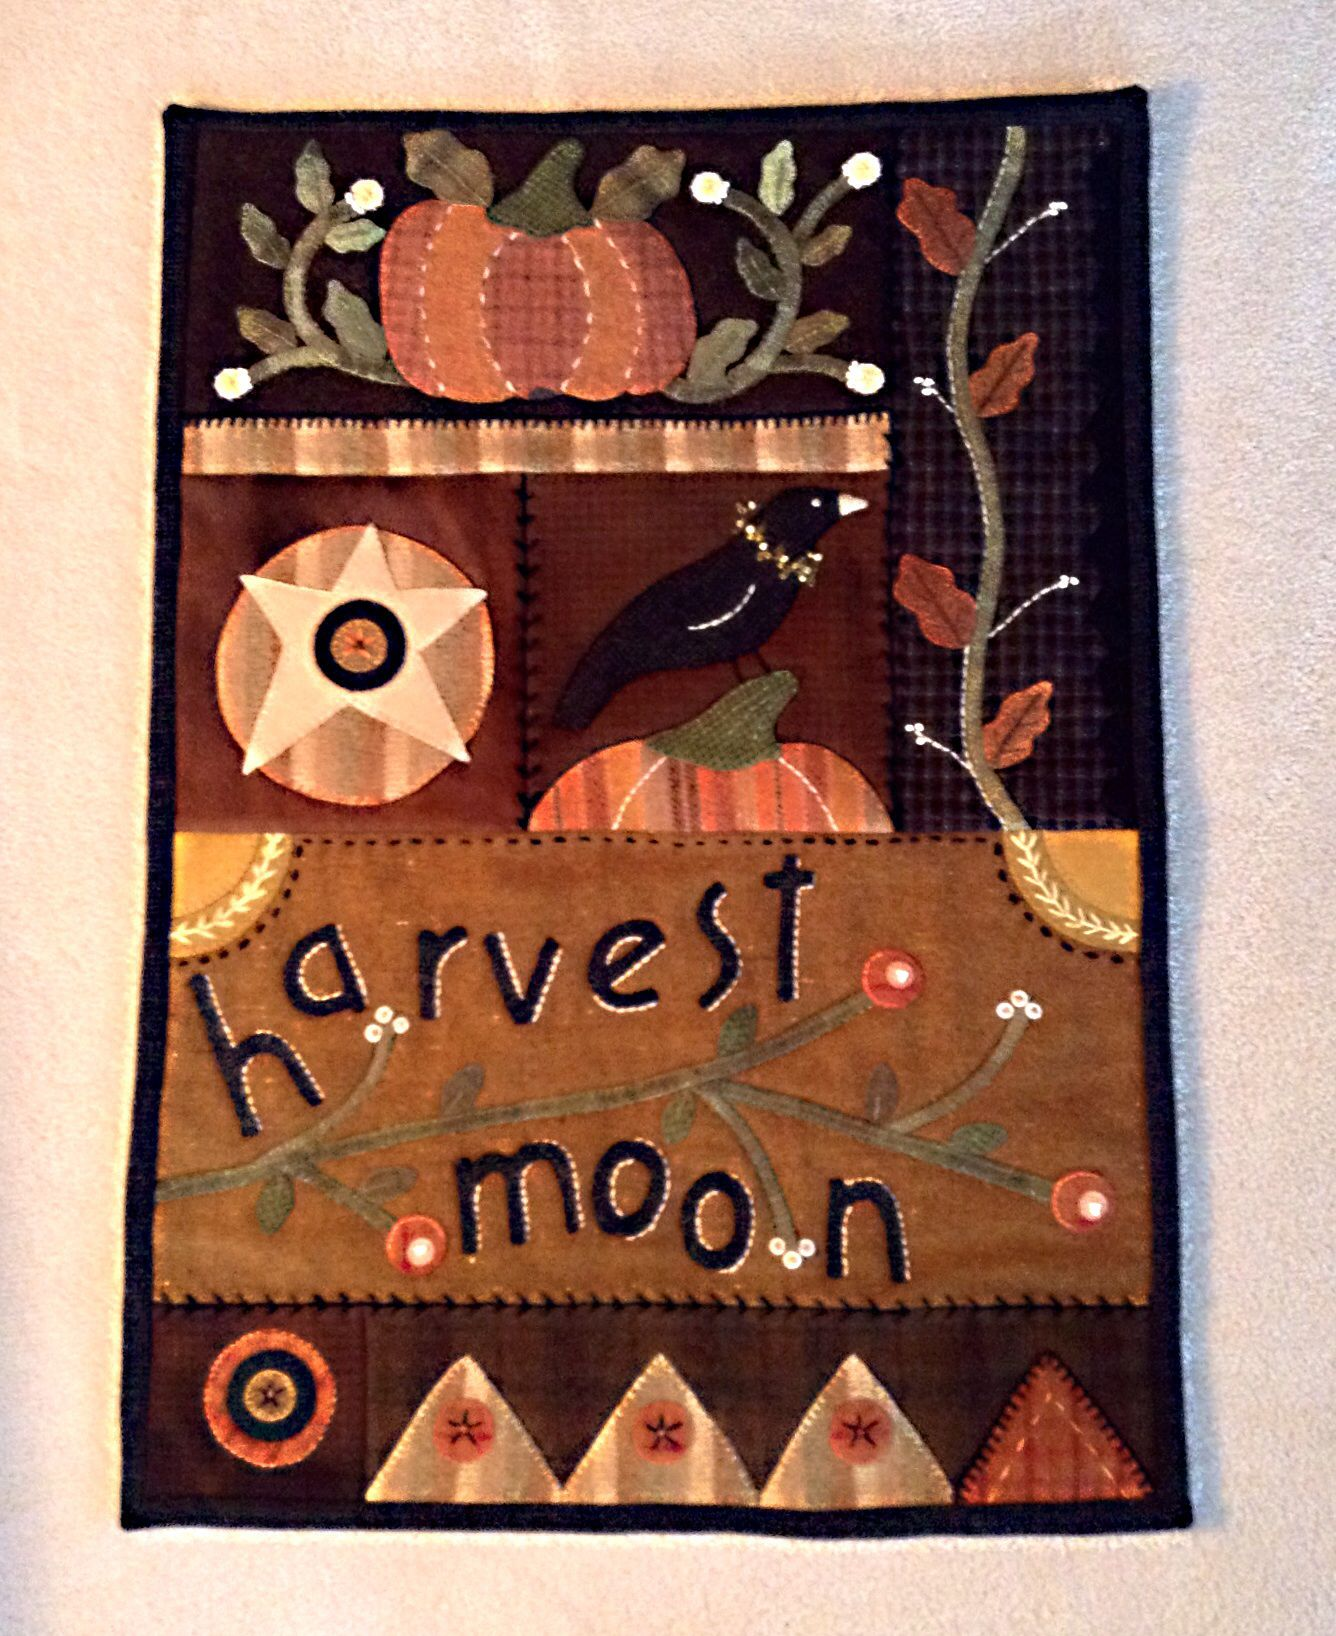 Harvest moon. Hand wool appliqué and stitch embellishment on wool. 2013